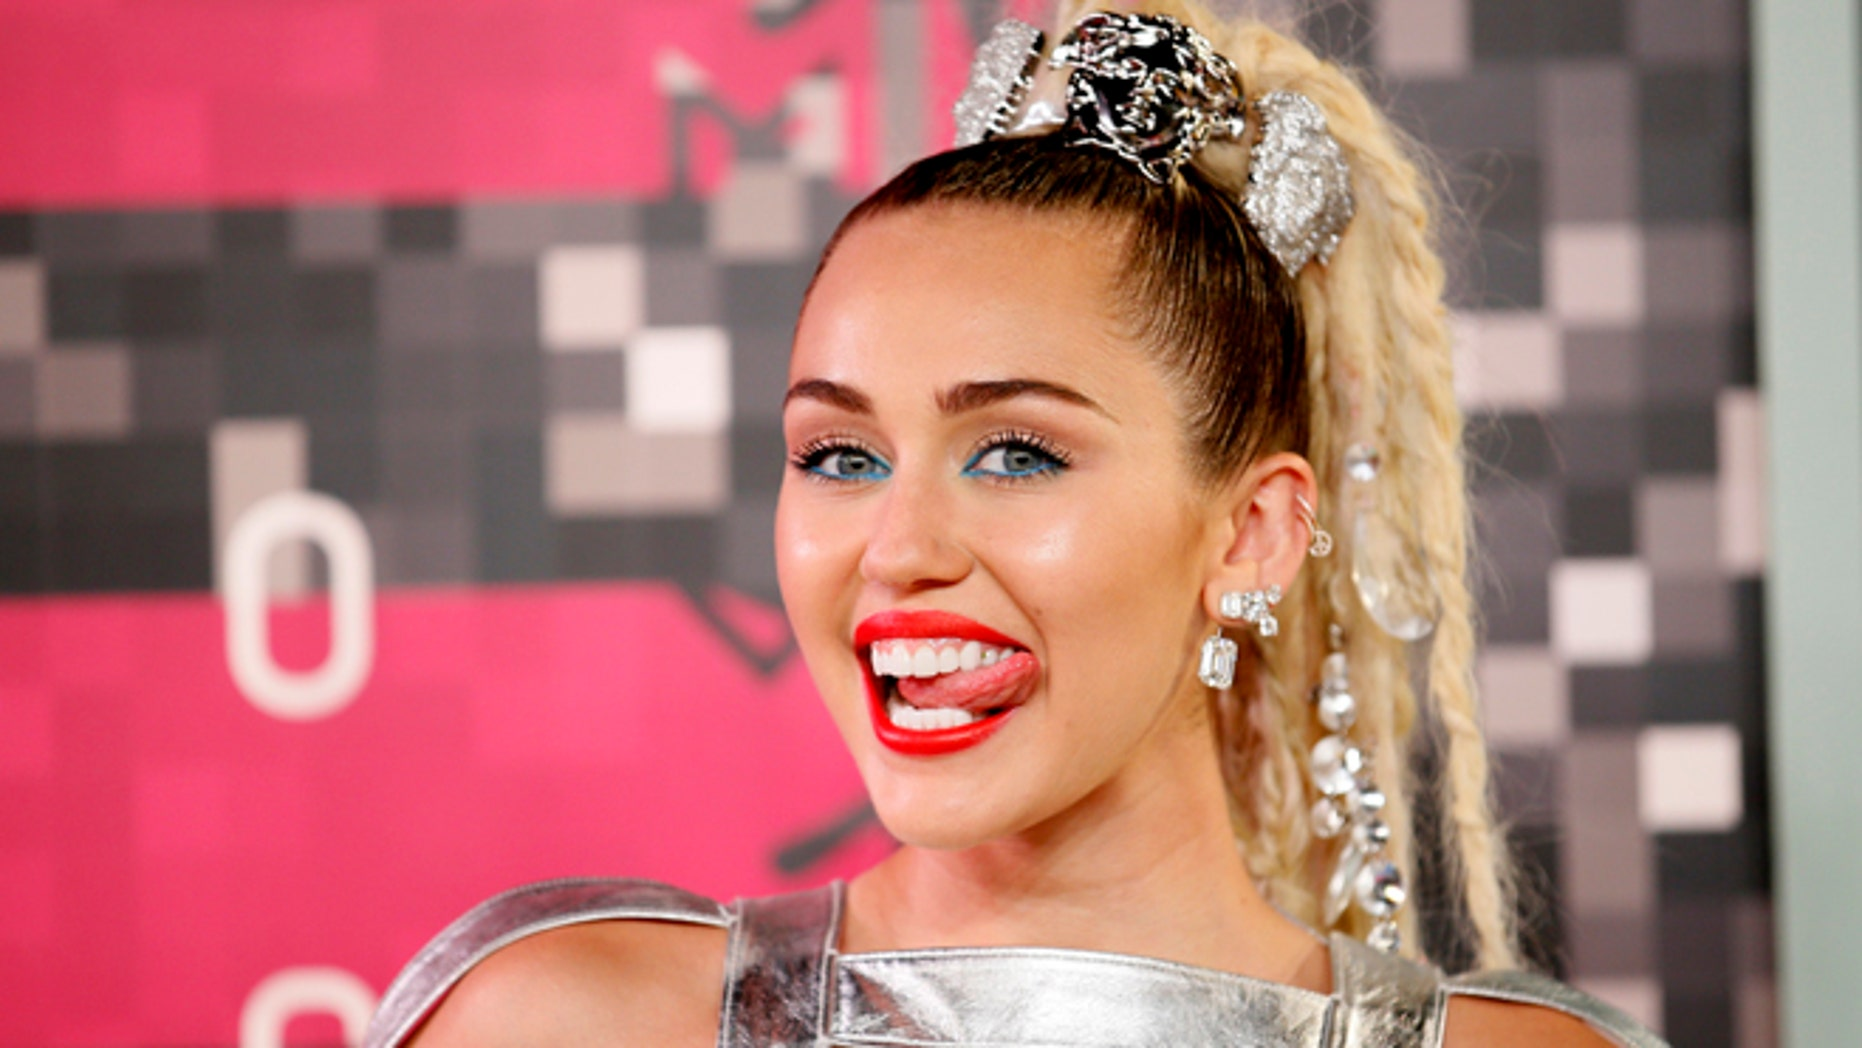 August 30, 2015. Singer and show host Miley Cyrus arrives at the 2015 MTV Video Music Awards in Los Angeles, California.